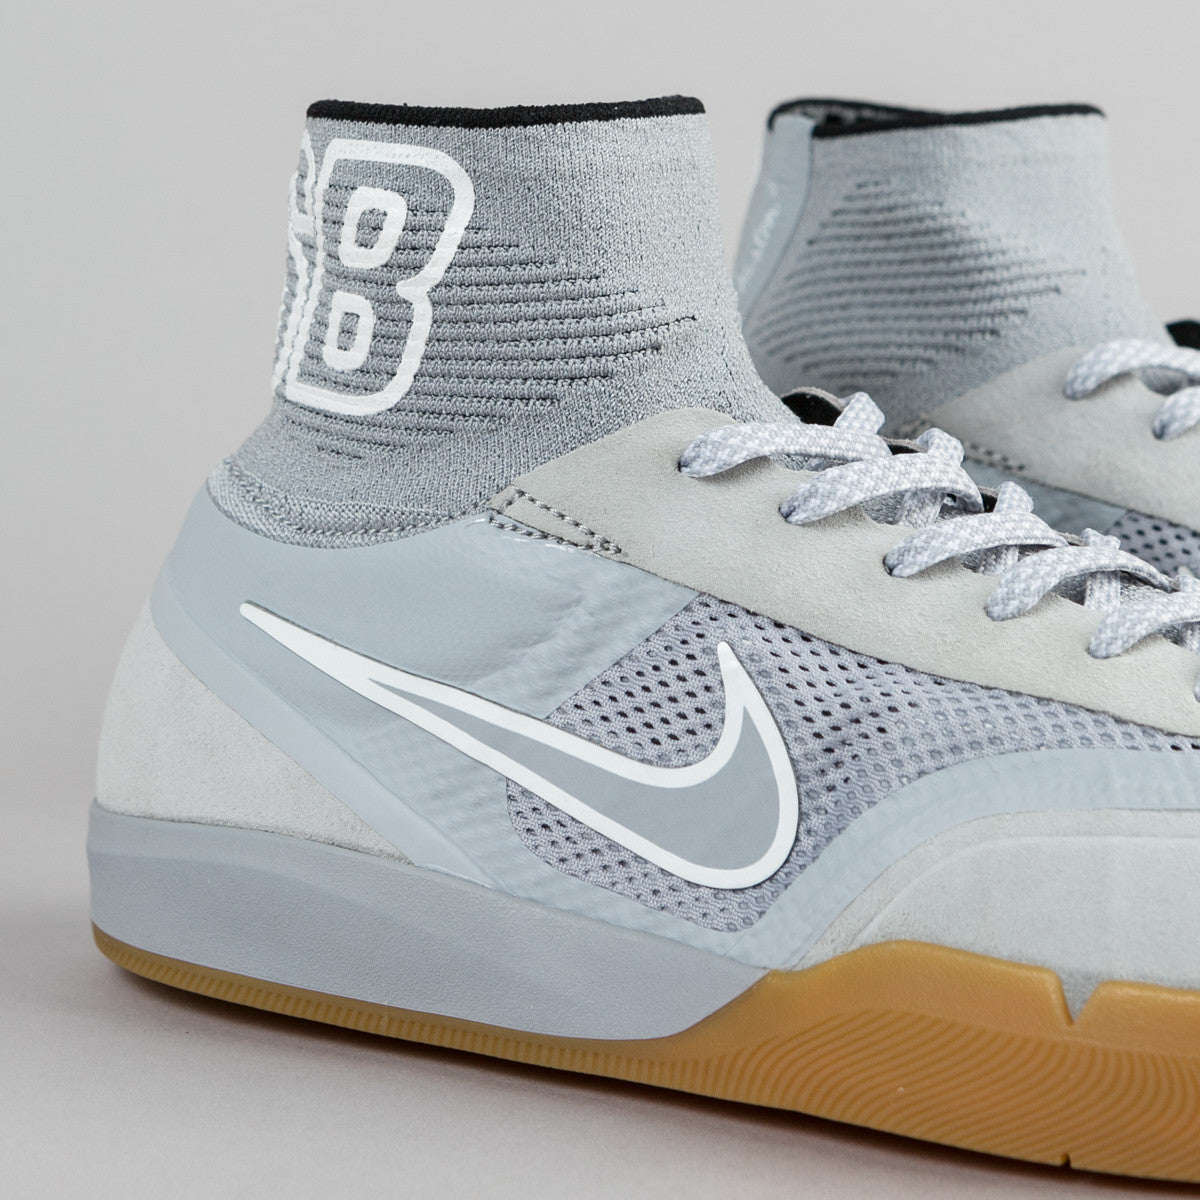 Nike SB Koston 3 Hyperfeel Shoes - Wolf Grey / Wolf Grey - White - Black